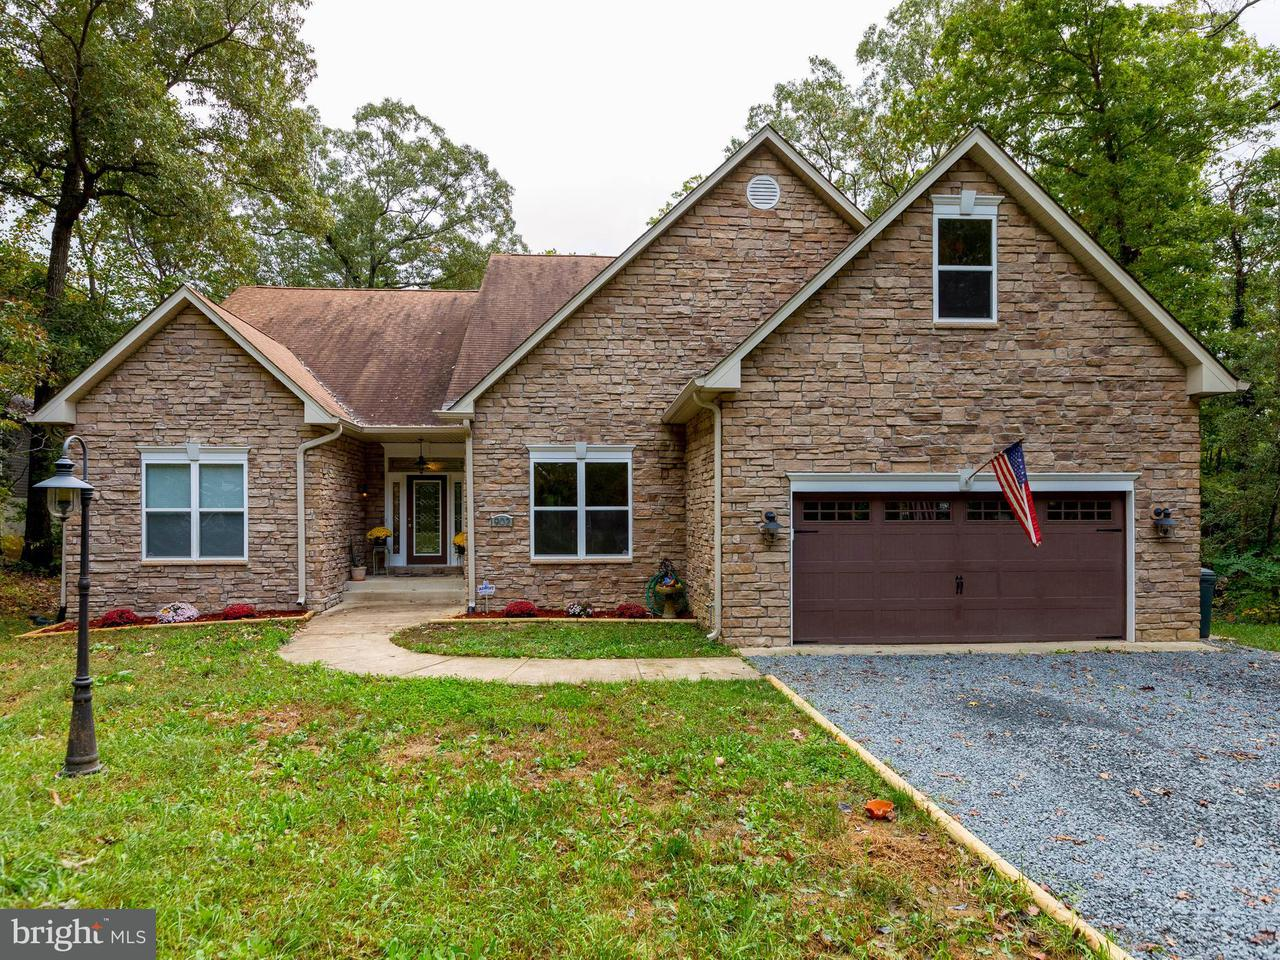 Single Family Home for Sale at 902 HUNGERFORD Road 902 HUNGERFORD Road Lusby, Maryland 20657 United States